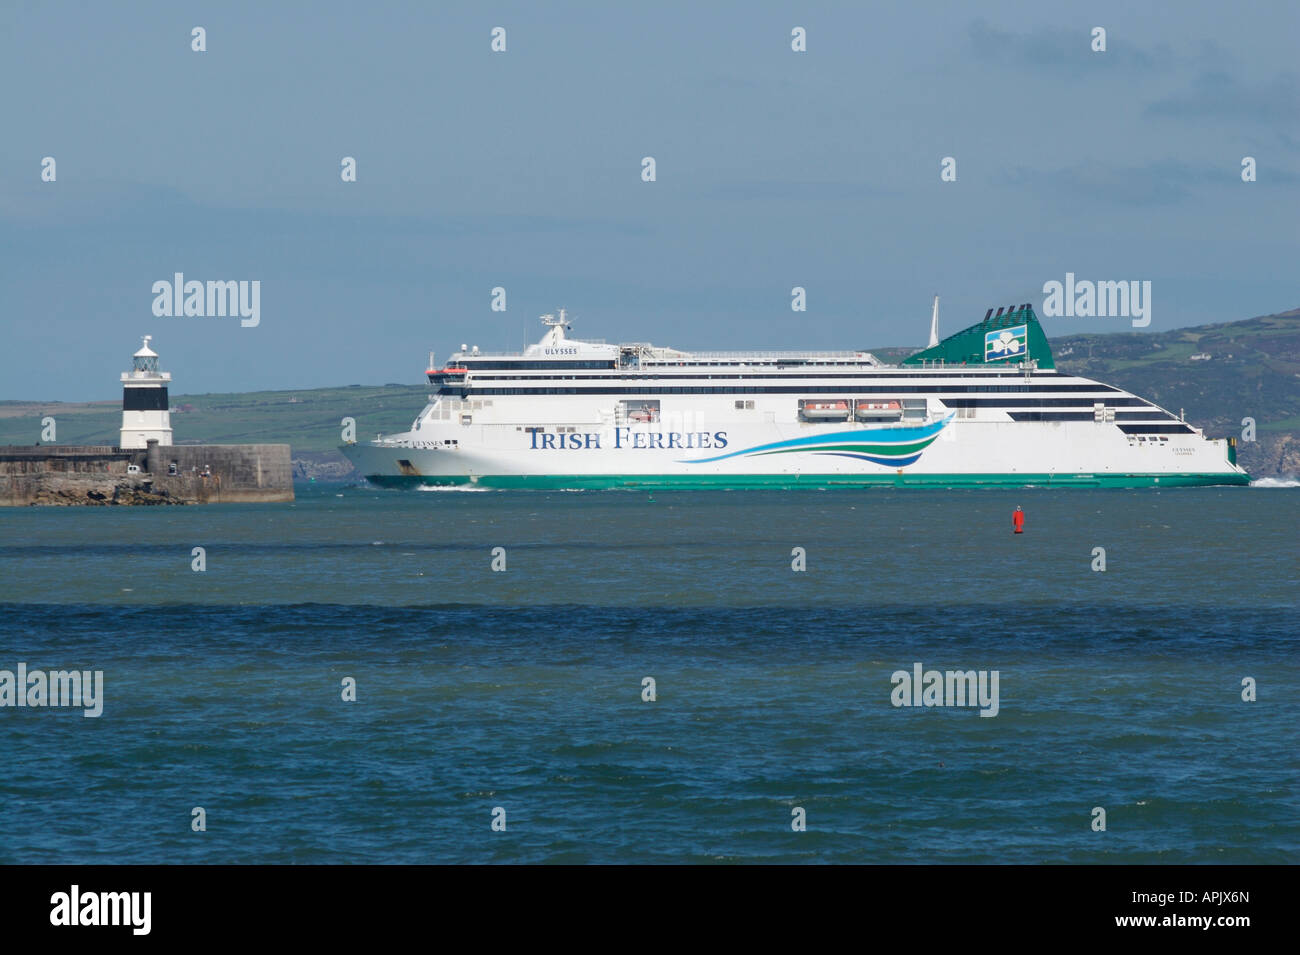 Ferry To Ireland From Holyhead >> Irish Ferry Ulysses Holyhead Port Stock Photo 15807980 Alamy